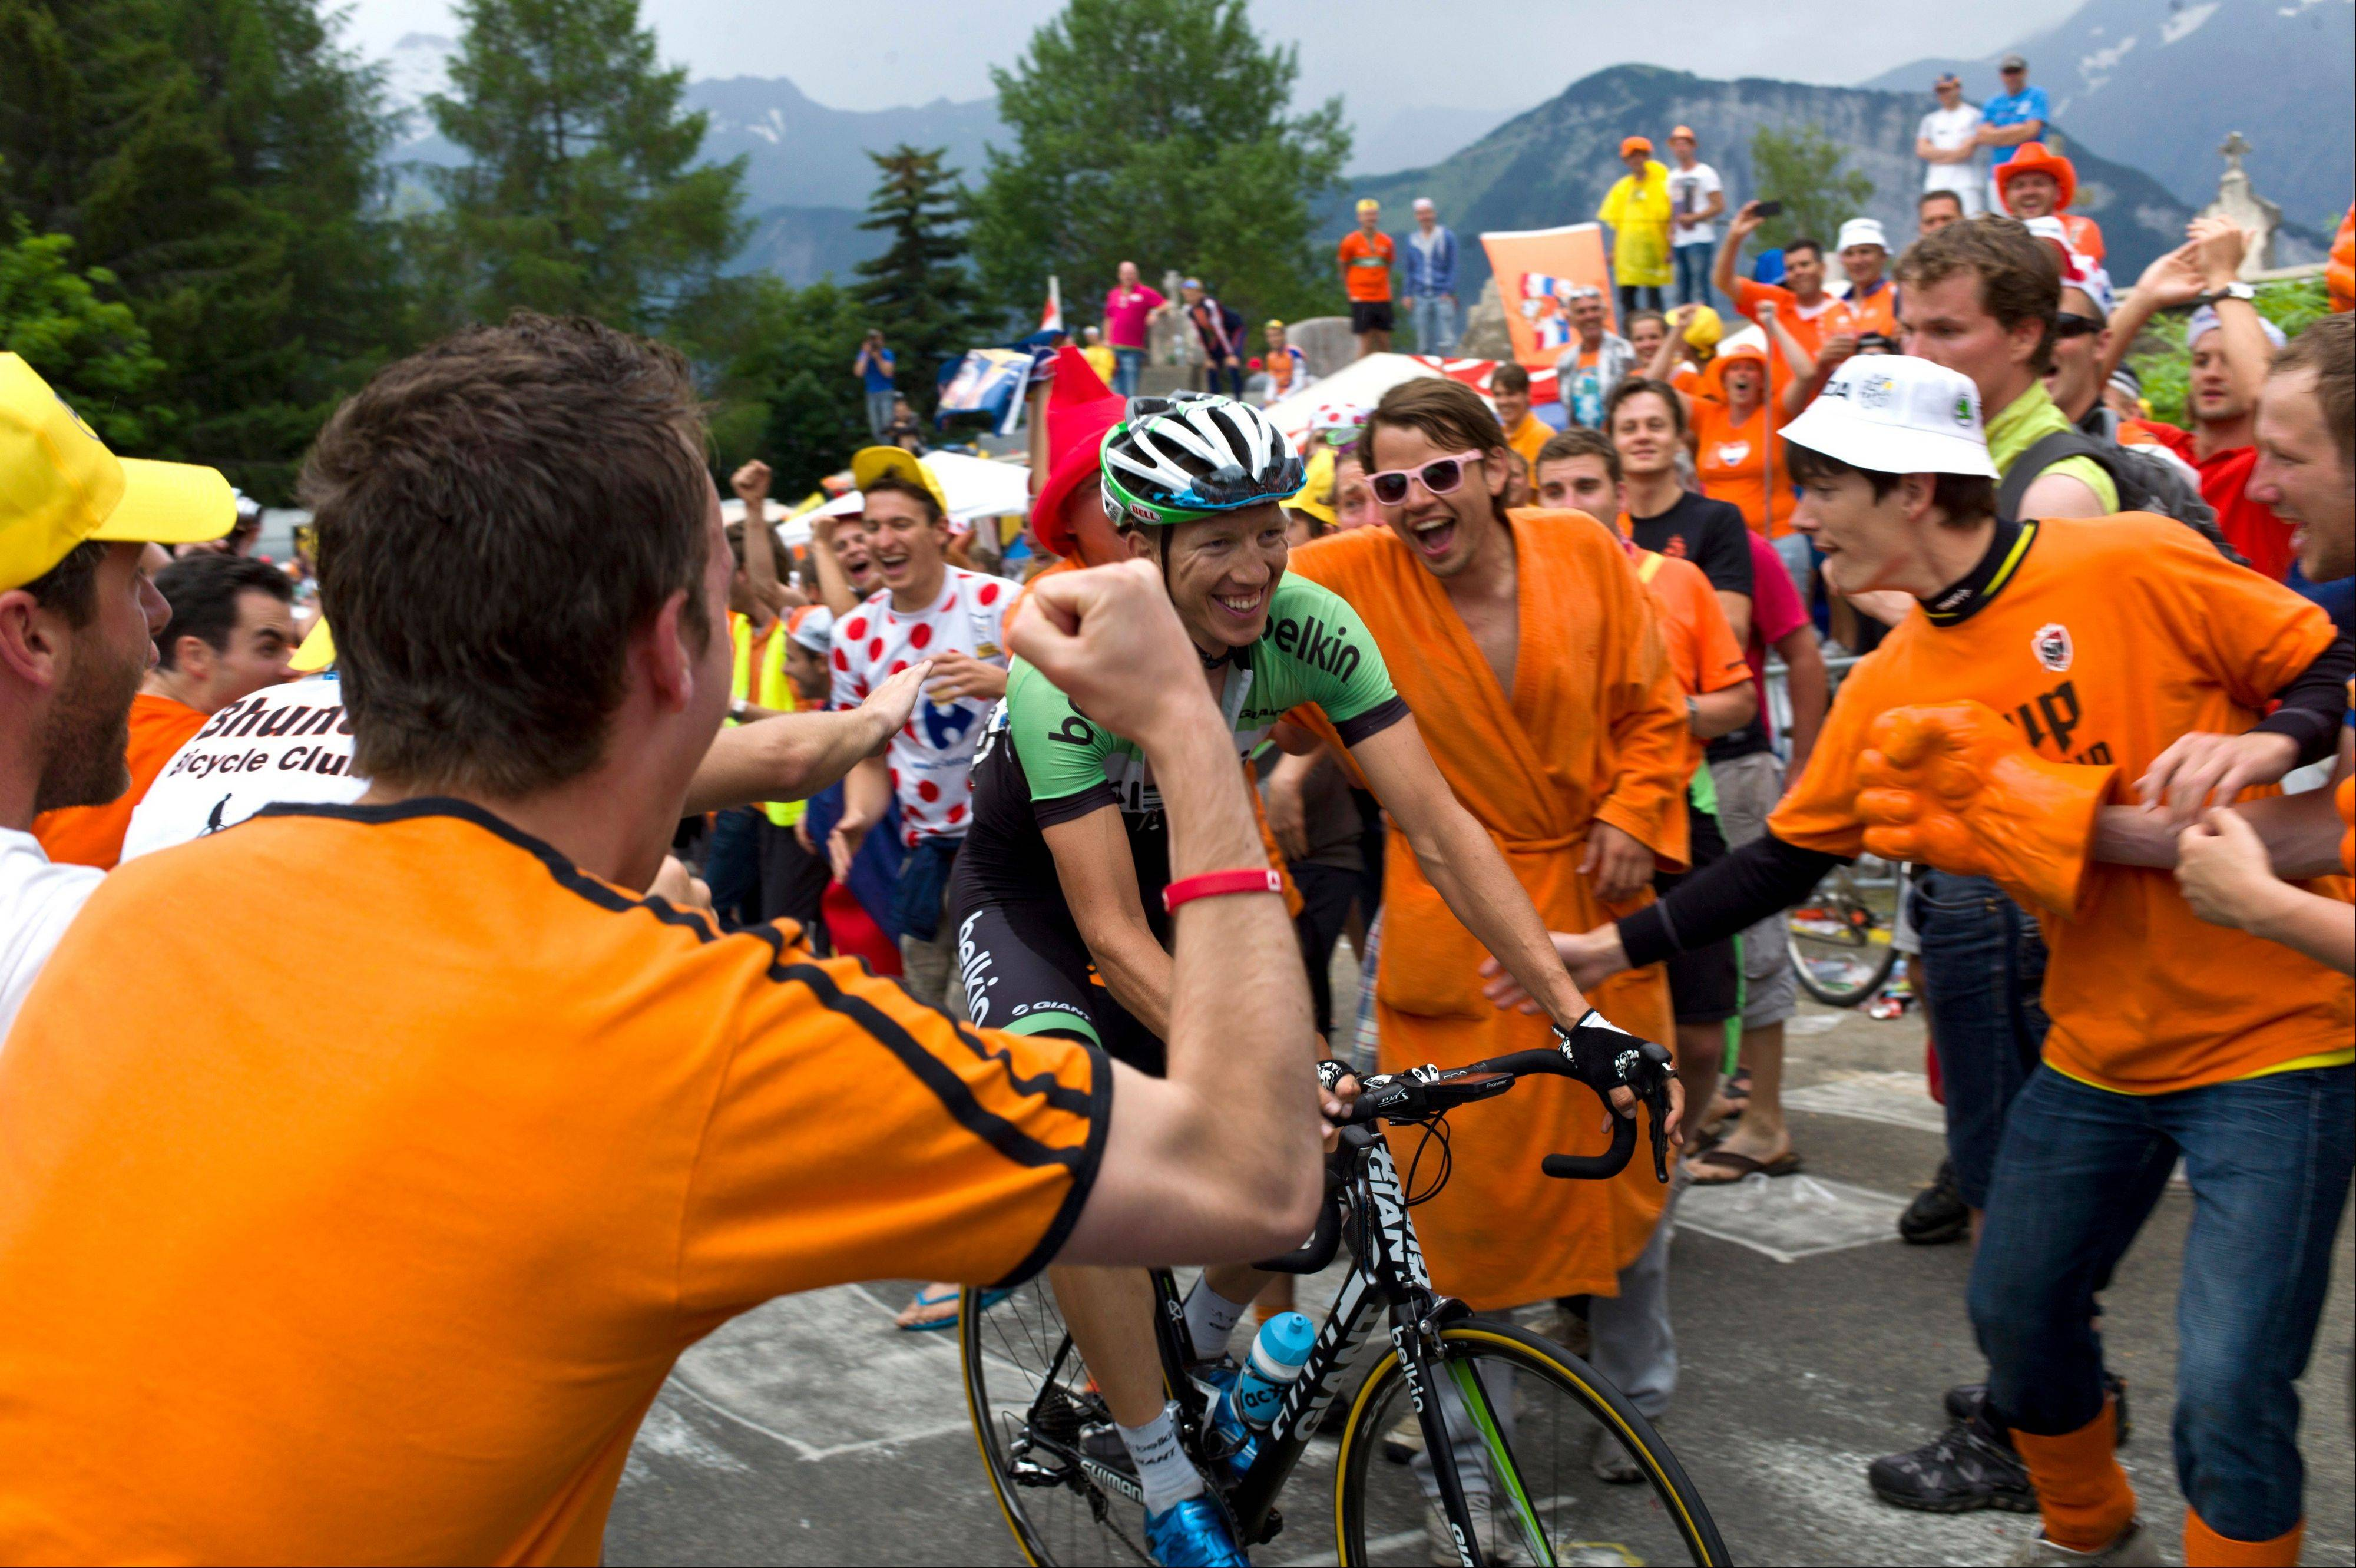 Dutch cycling fans cheers as Sep Vanmarcke of Belgium passes curve number 7, also known as the Dutch curve during the eighteenth stage of the Tour de France cycling race over 172.5 kilometers (107.8 miles) with start in Gap and finish in Alpe-d'Huez, France, Thursday July 18, 2013.